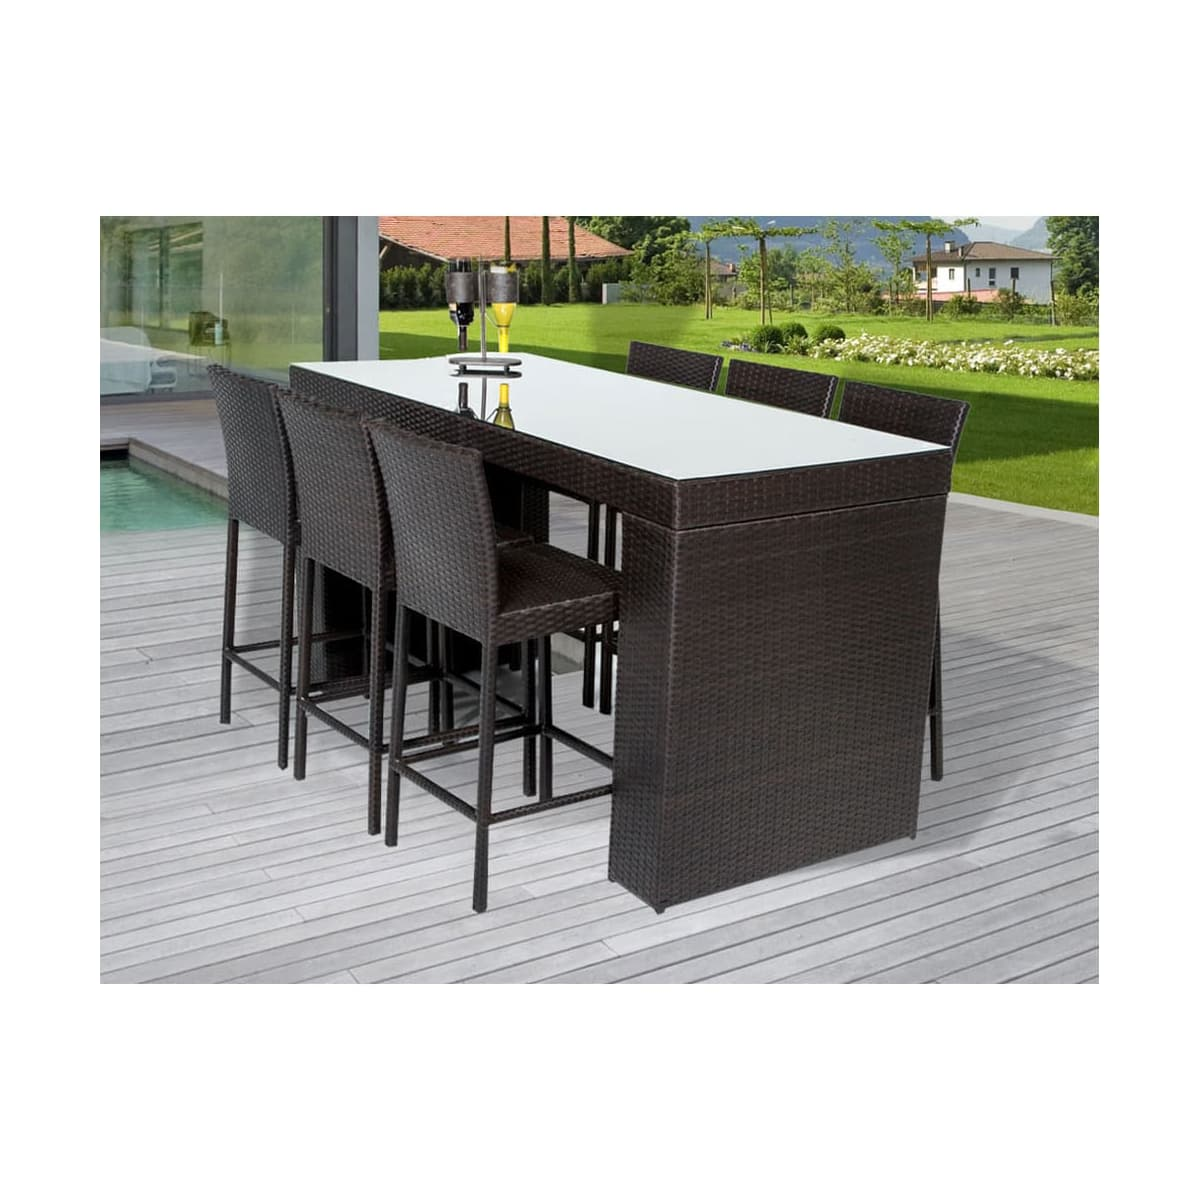 Wine country 7 piece aluminum framed outdoor bar set with rectangular glass tabletop and solid back barstools